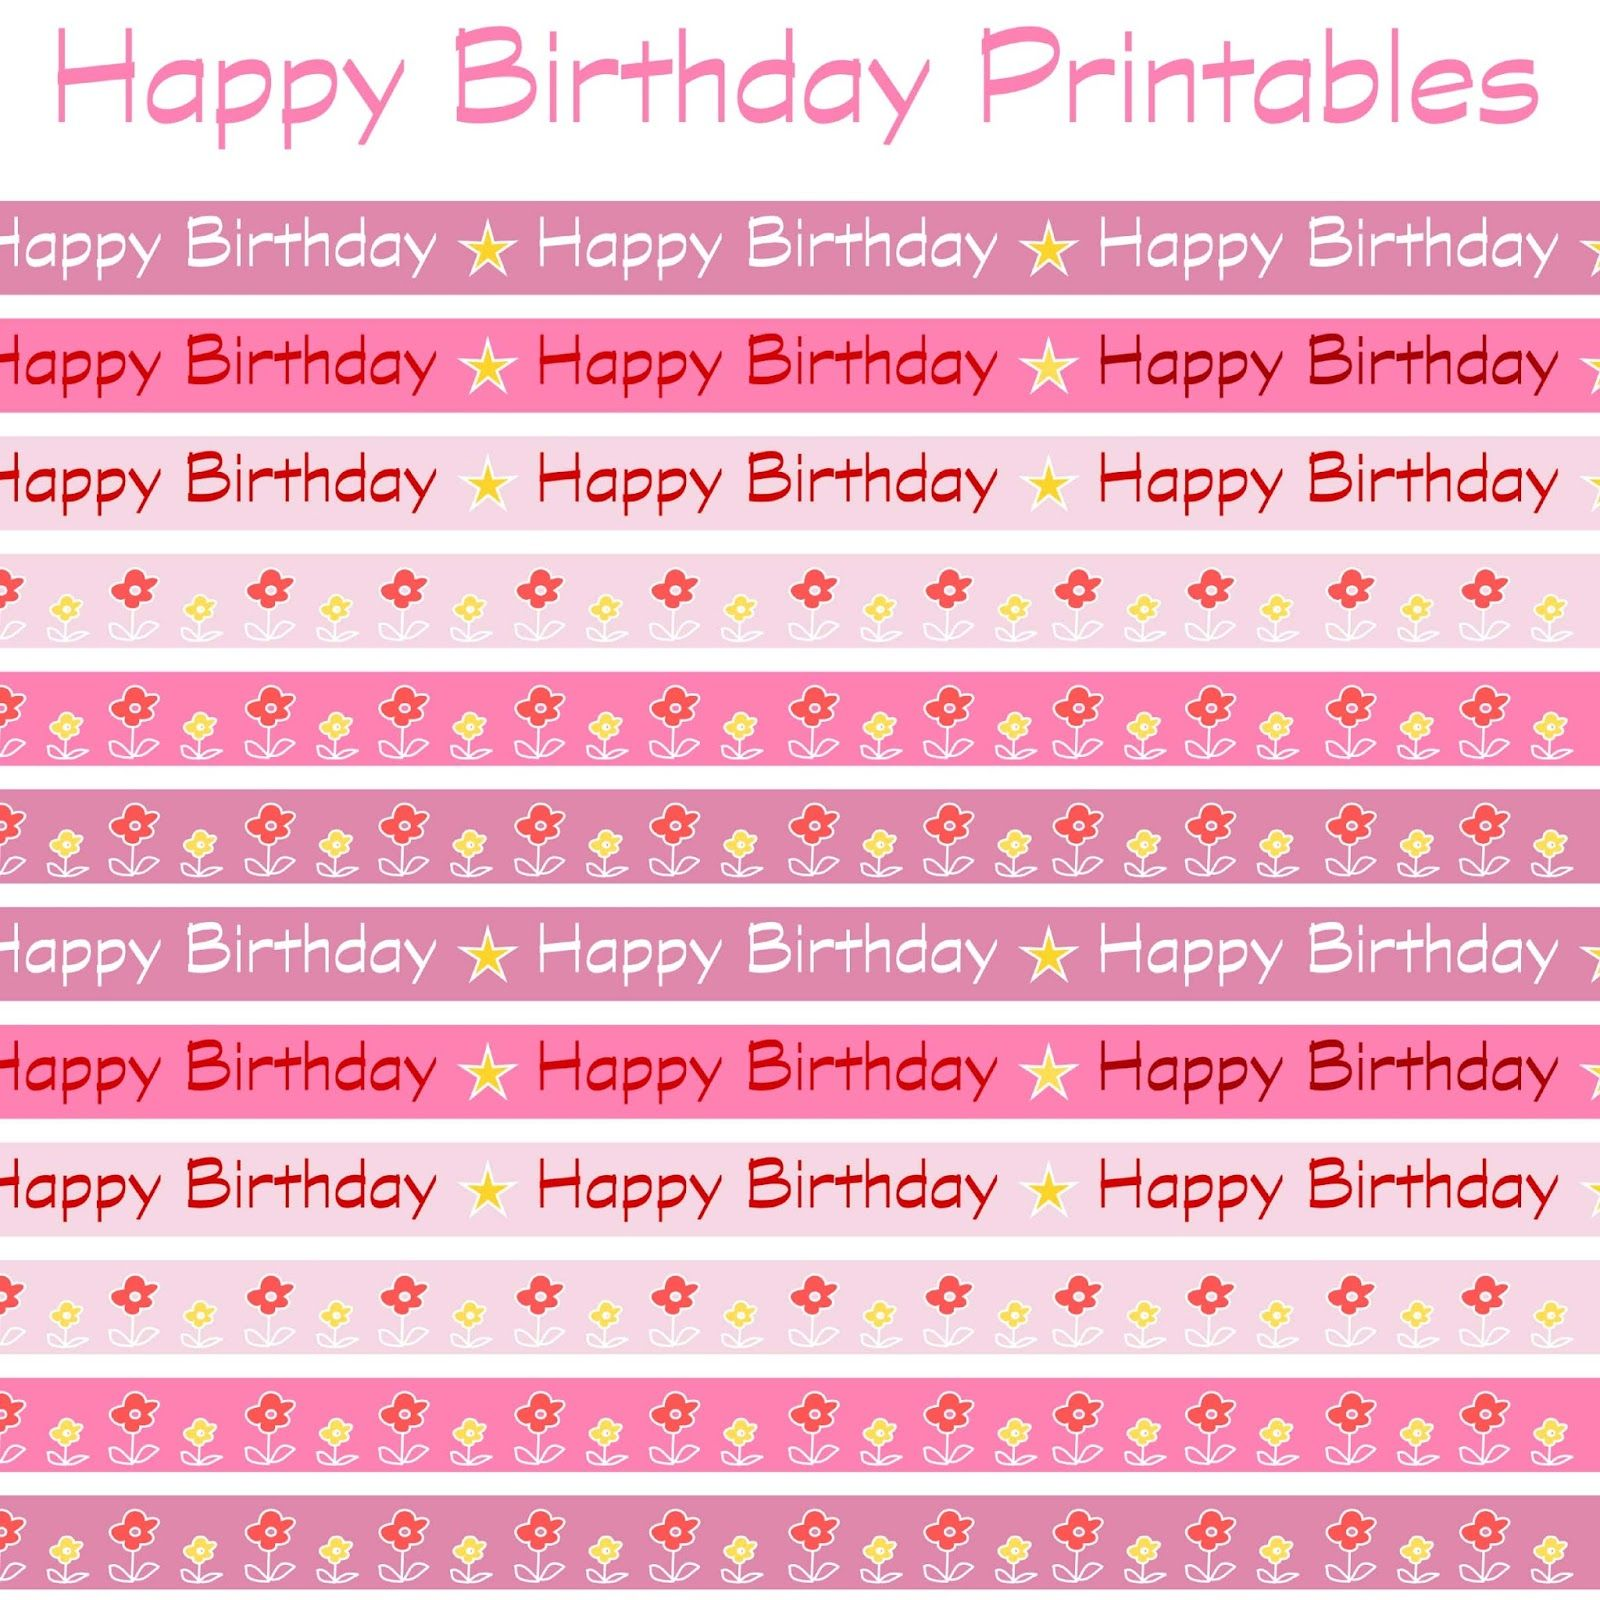 free printable birthday borders ; b824323466e4e6967be662c0b3ce5f01